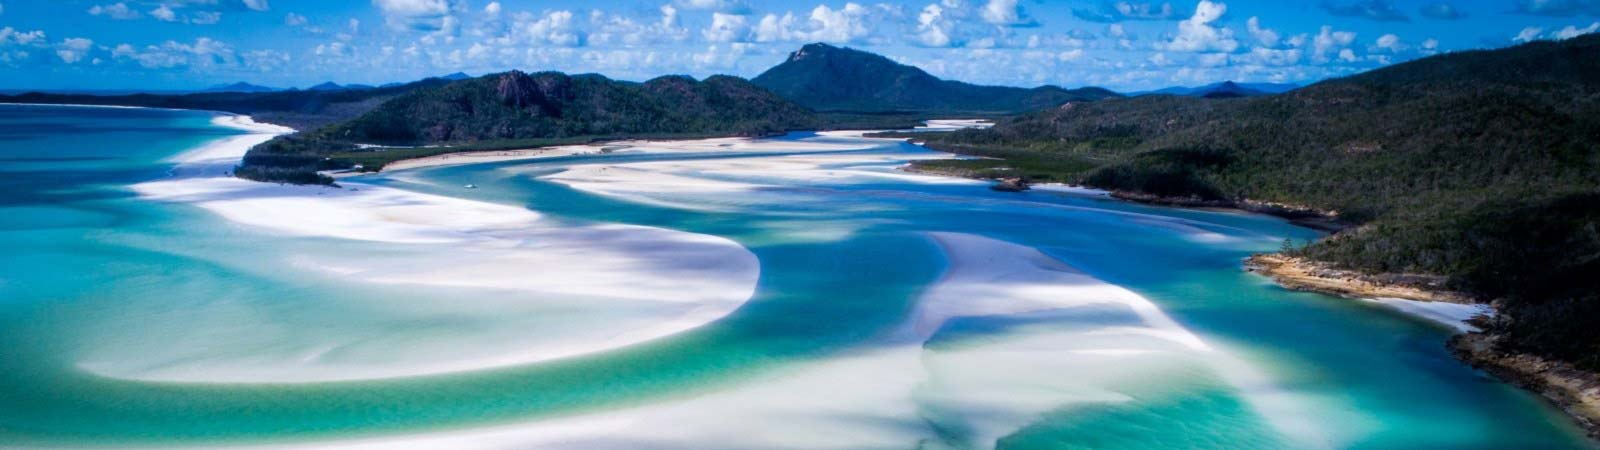 Hill Inlet, Whitsunday Island Queensland